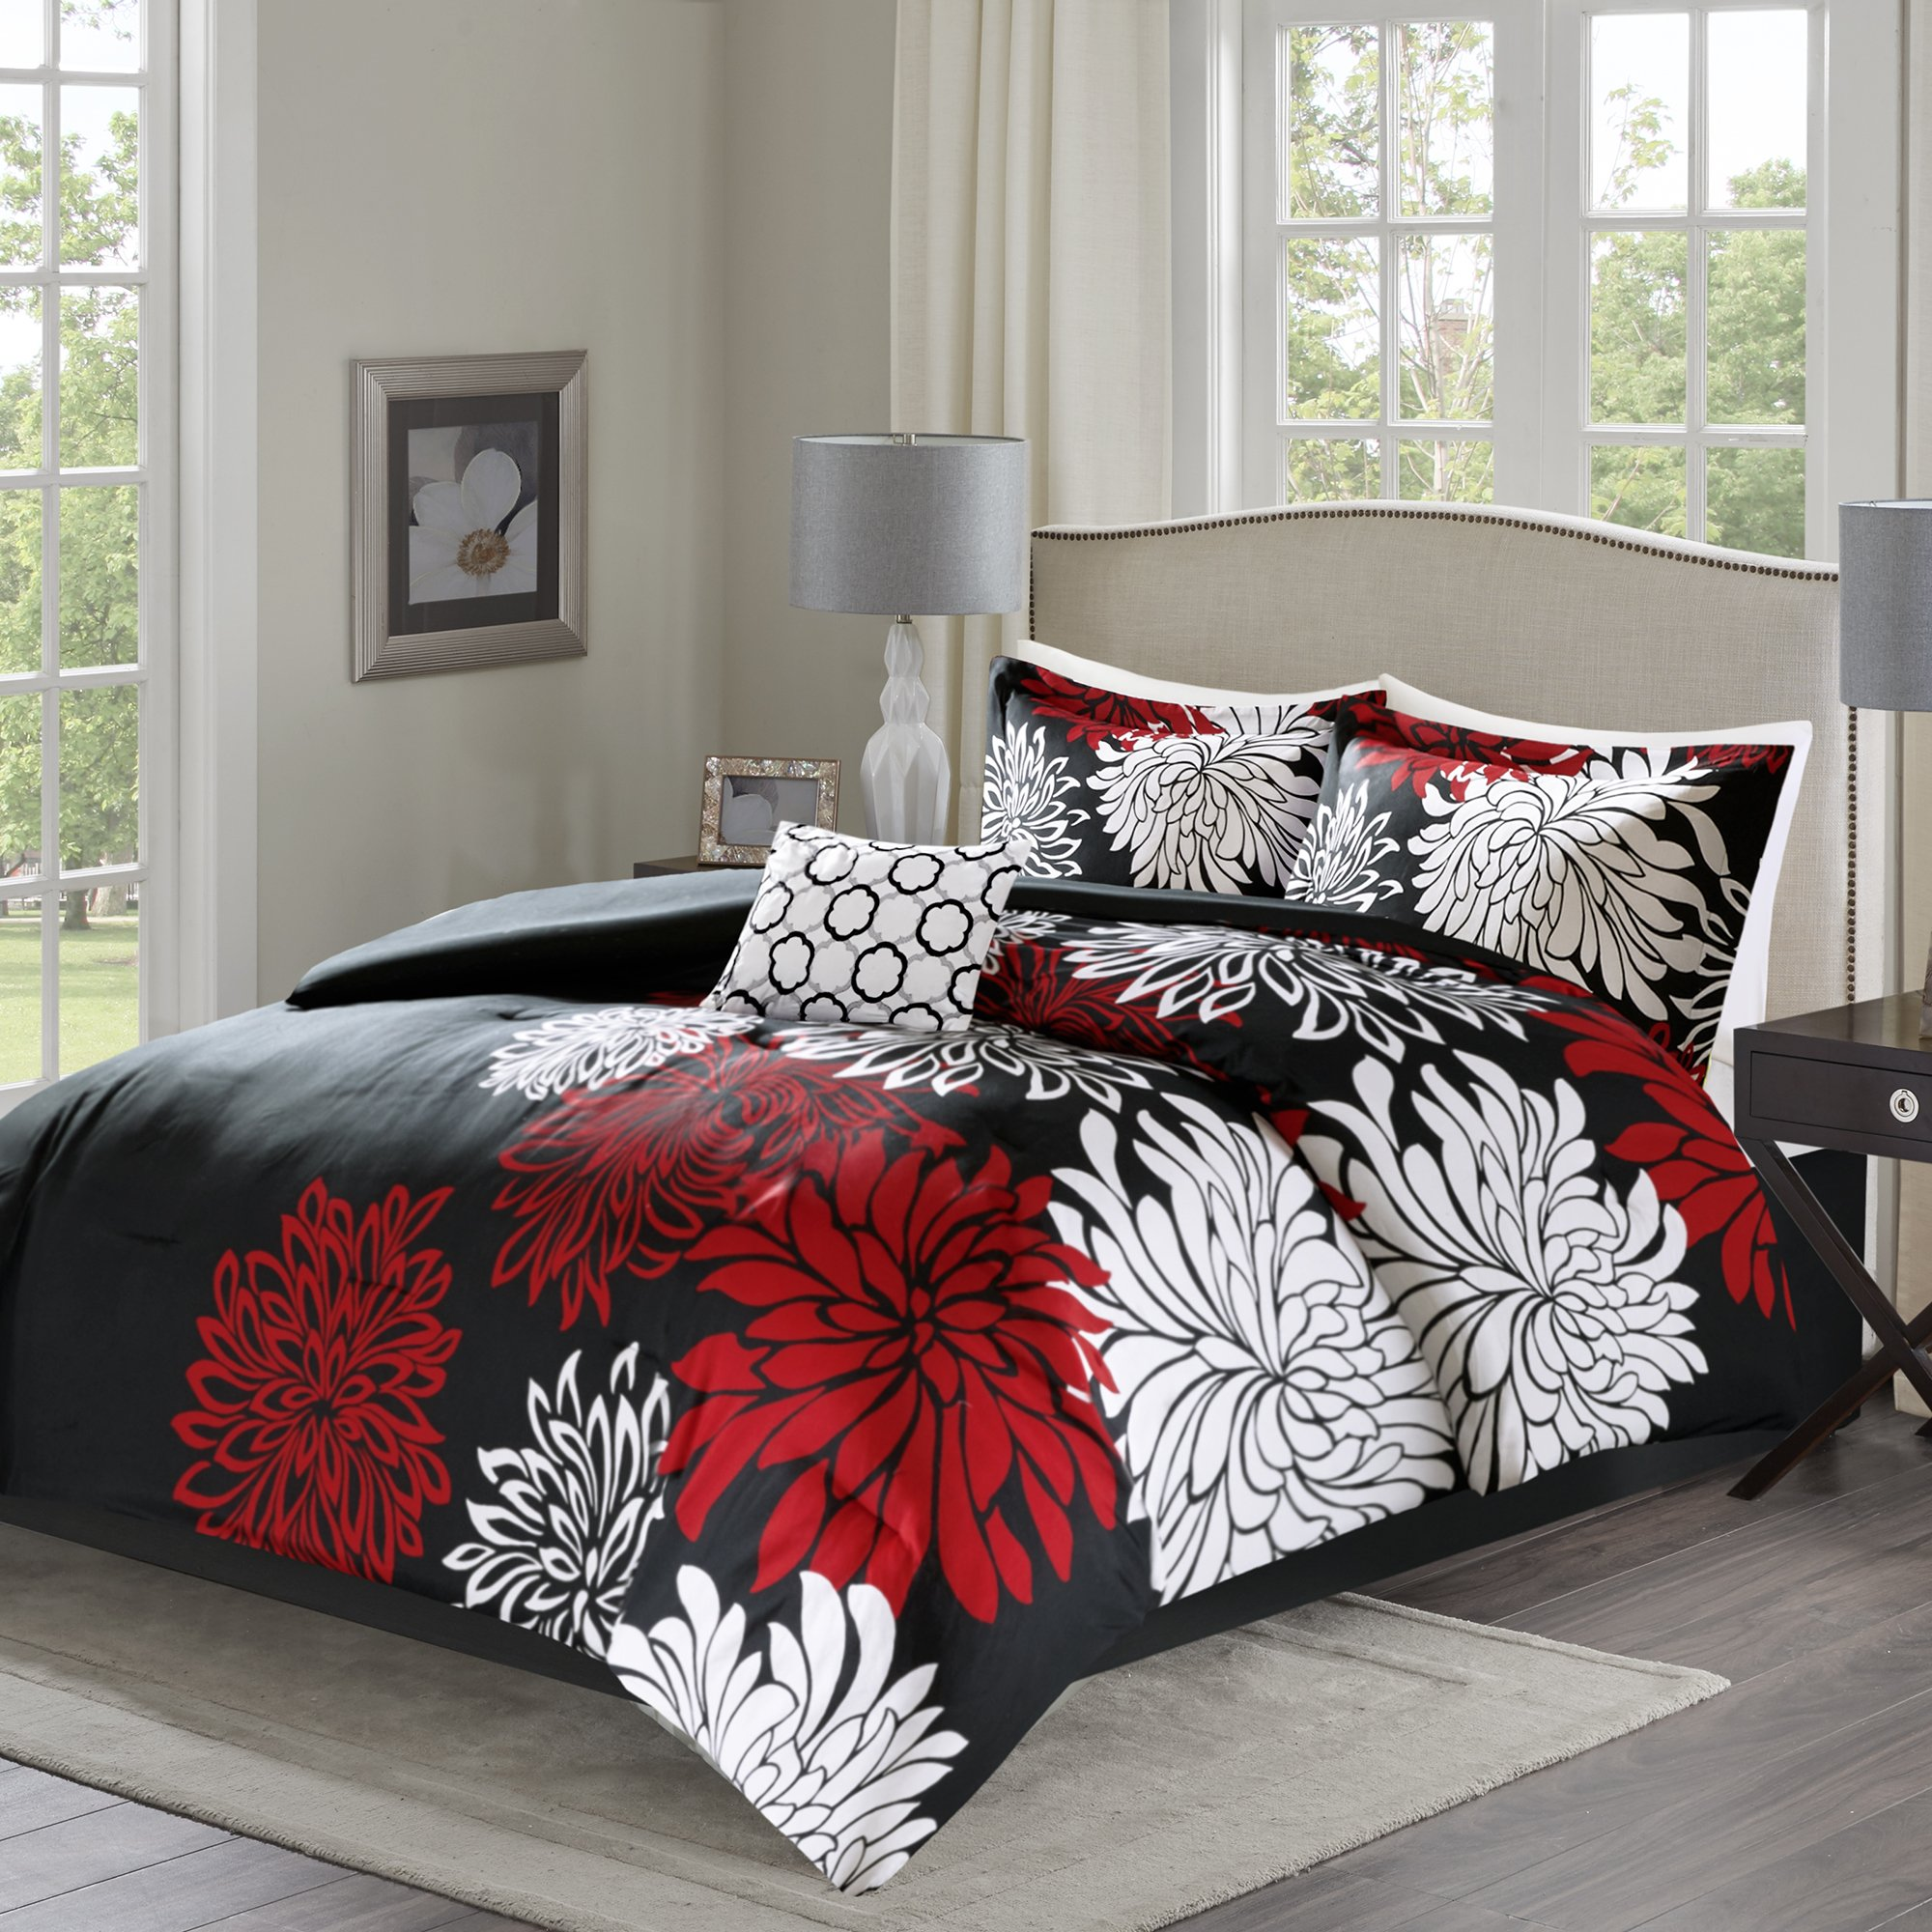 Comfort Spaces – Enya Comforter Set - 5 Piece – Black, Red – Floral Printed – King size, includes 1 Comforter, 2 Shams, 1 Decorative Pillow, 1 Bed Skirt by Comfort Spaces